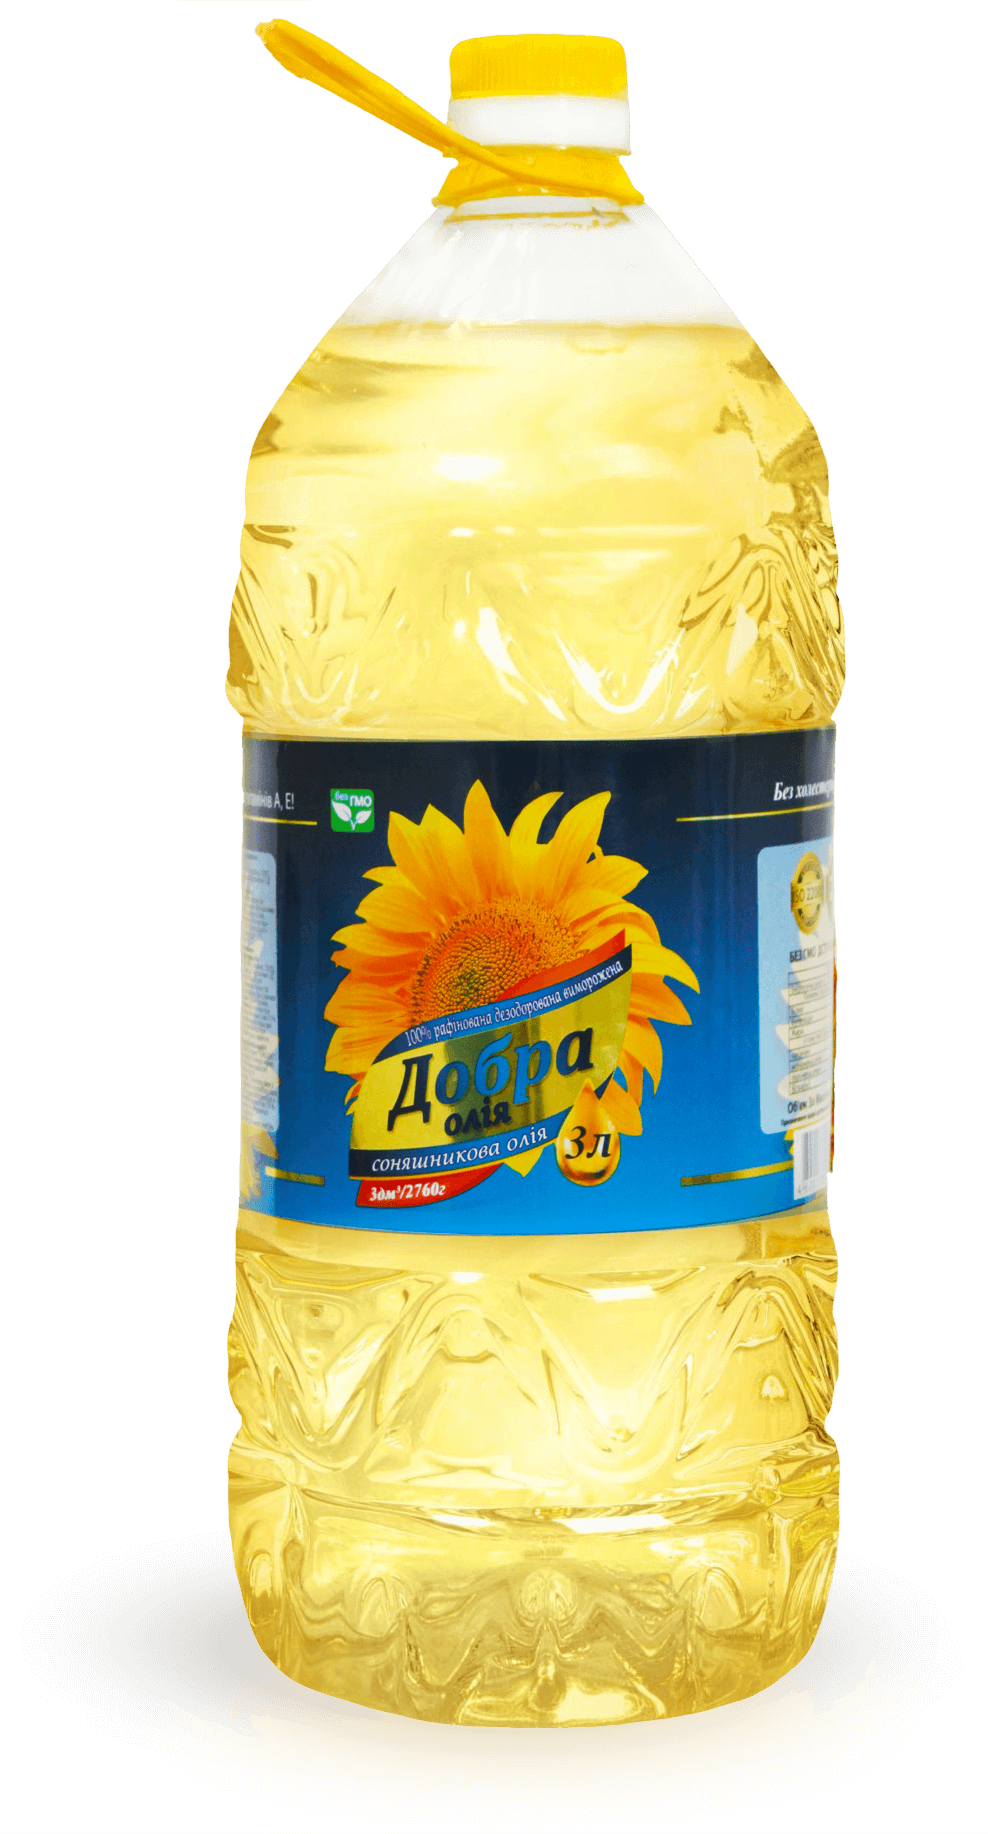 BOTTLE 3 liter Sunflower refined oil